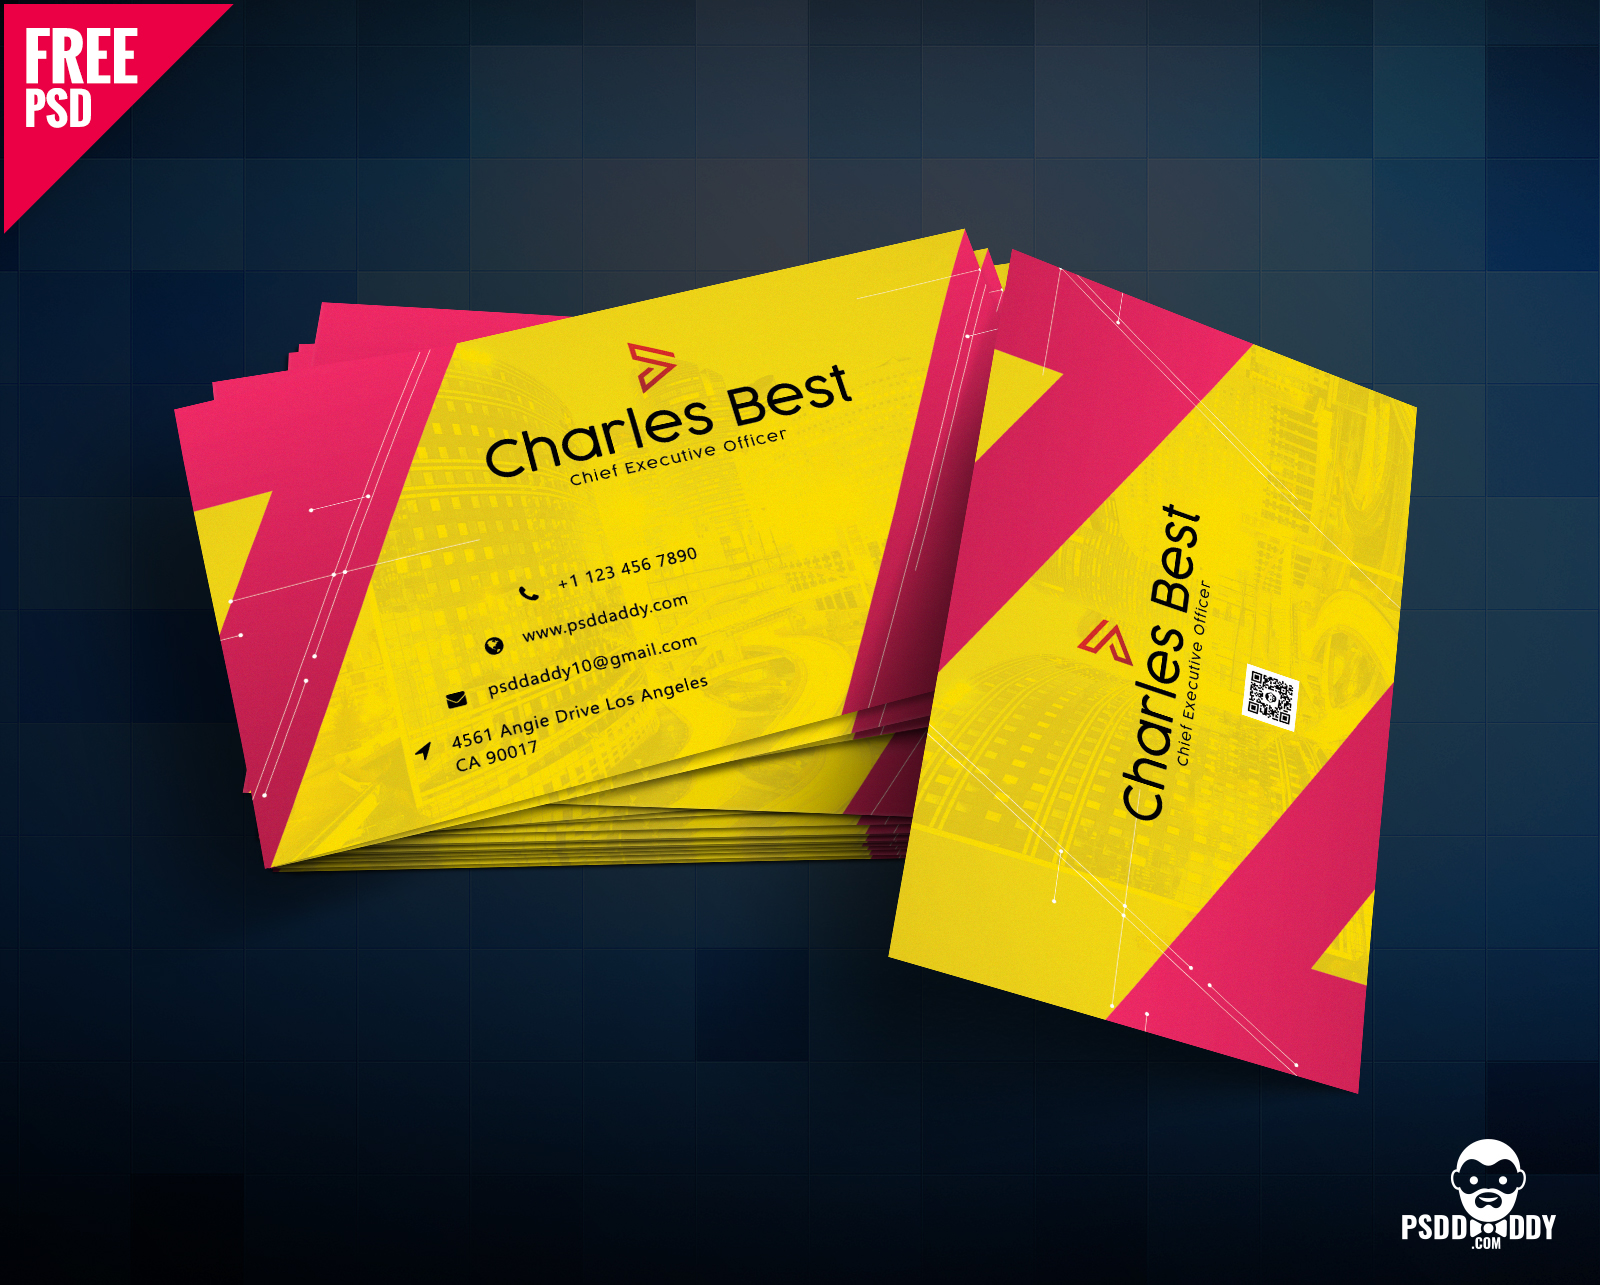 100 free business card psd templates creative business card template psd free download accmission Choice Image